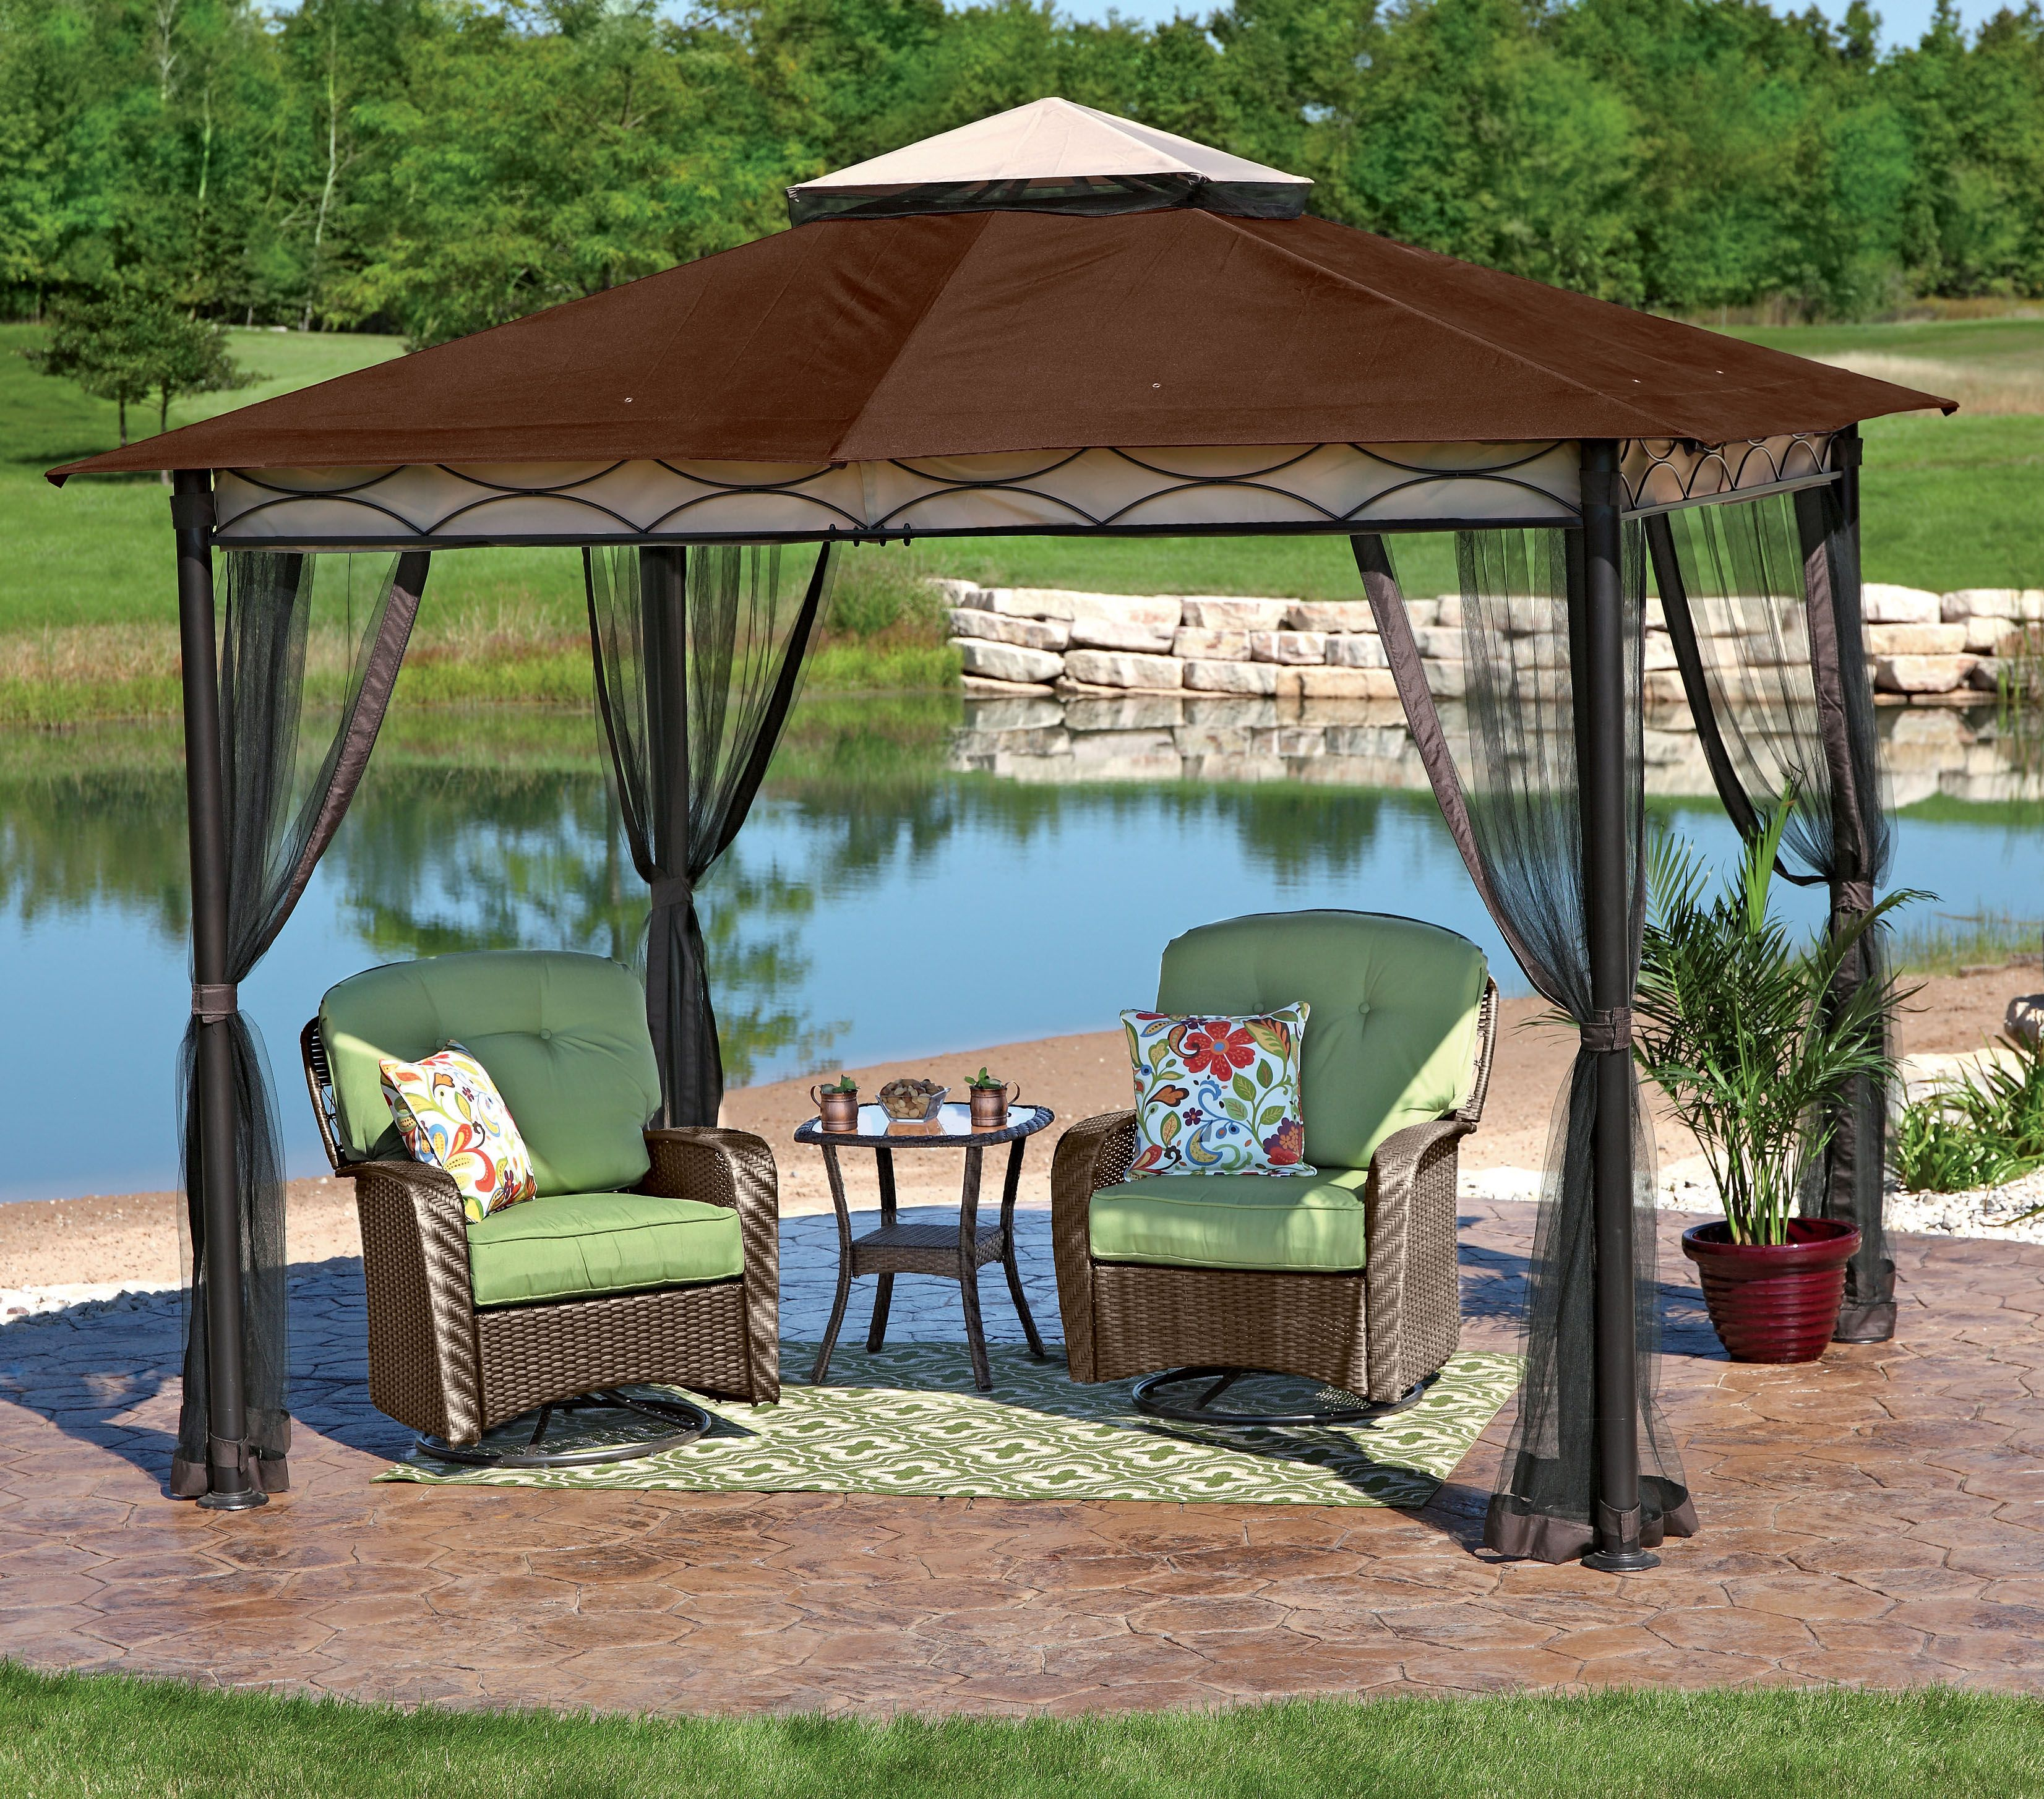 Youu0027ve Got It Made In The Shade With This NorthCrest Gazebo   Only At · Patio  Furniture ...